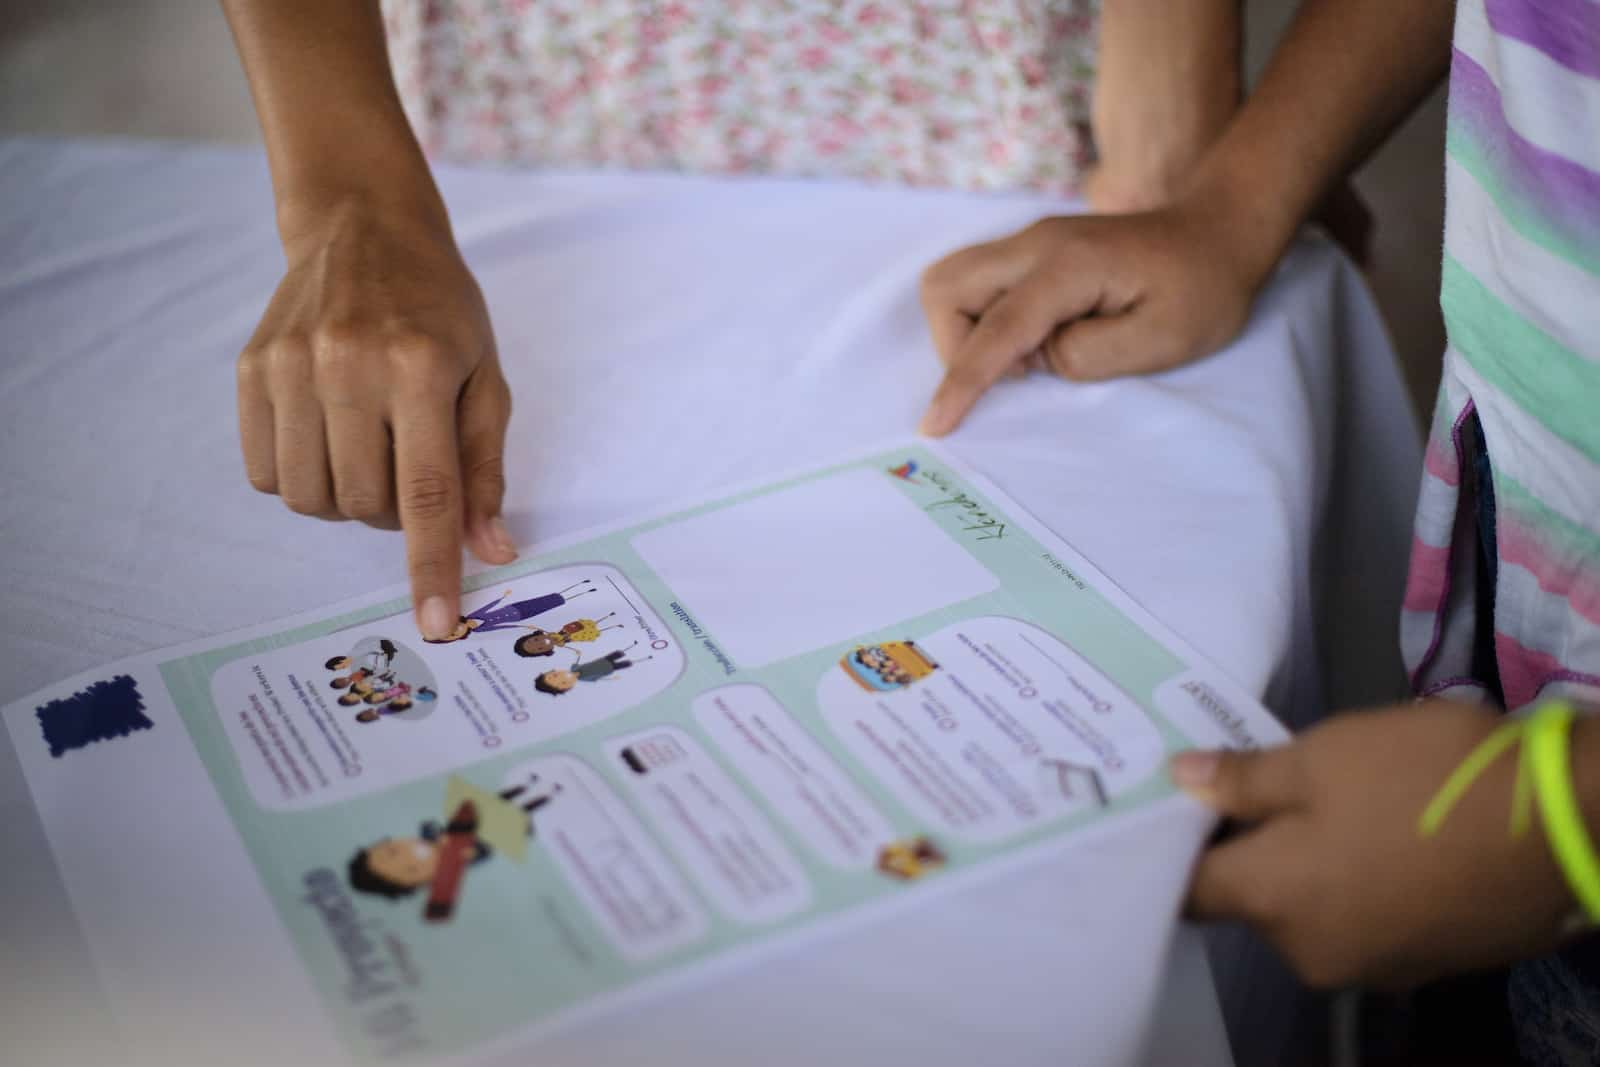 A letter is shown, with pictures on it and places to write. It lays on a table and two women's hands are pointing at it.